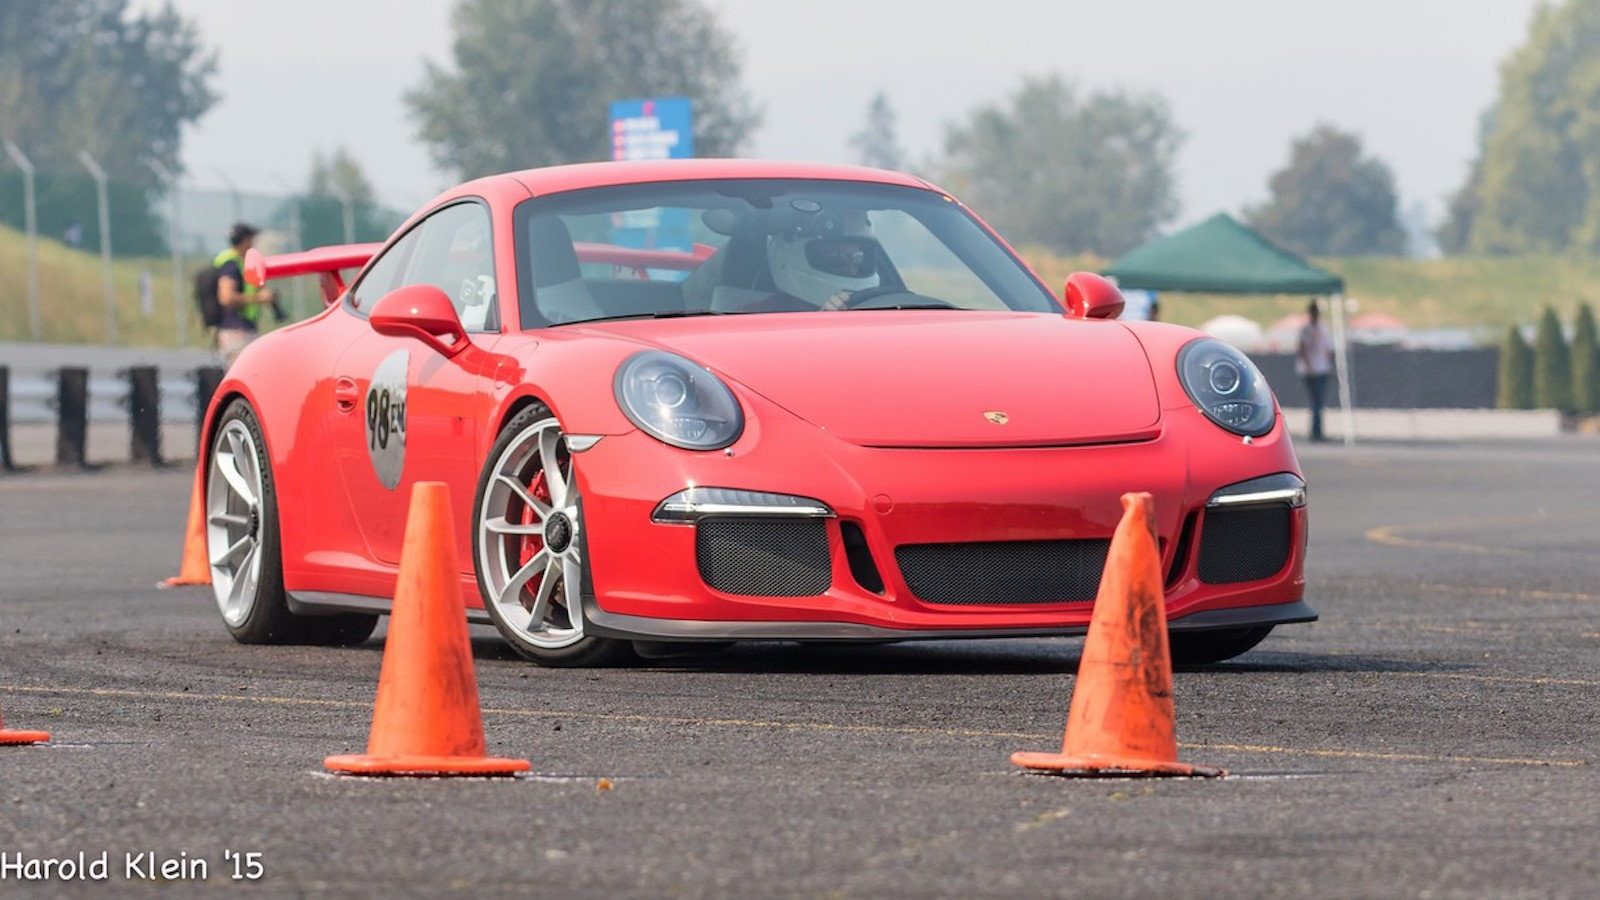 7 Thoughts on Autocross vs. Track Days